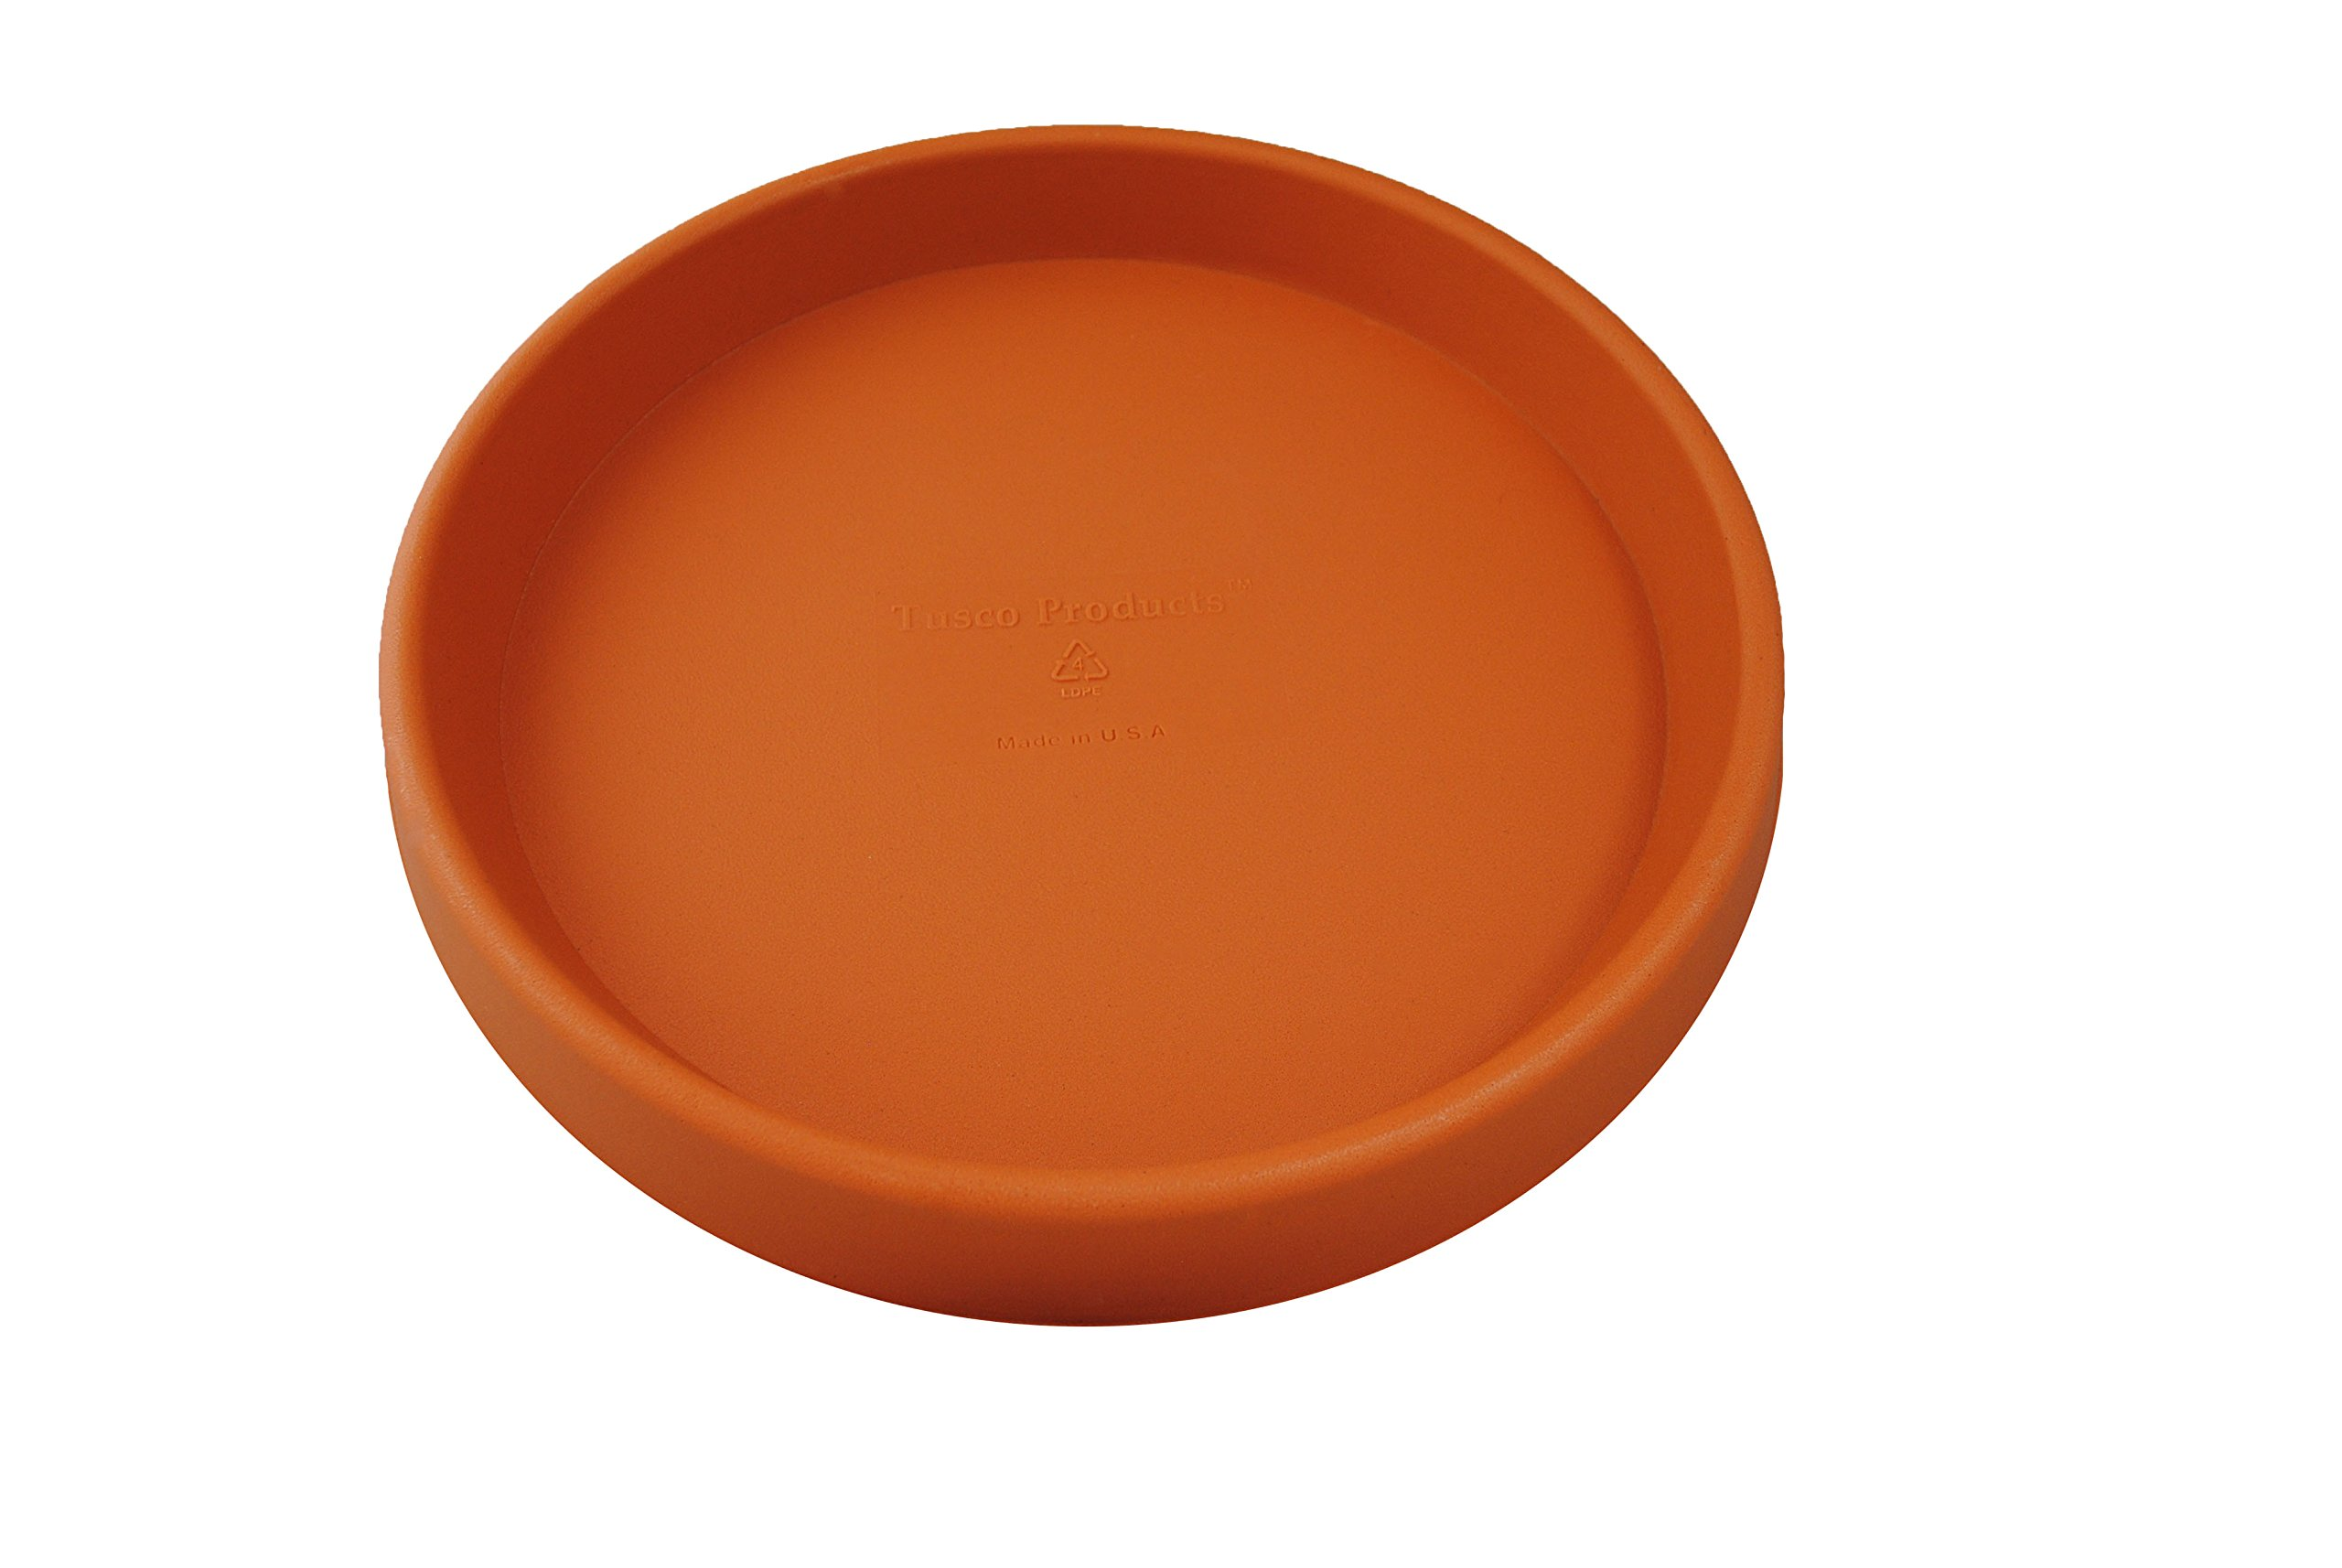 Tusco Products TR30TC Round Saucer, 30-Inch Diameter, Terra Cotta